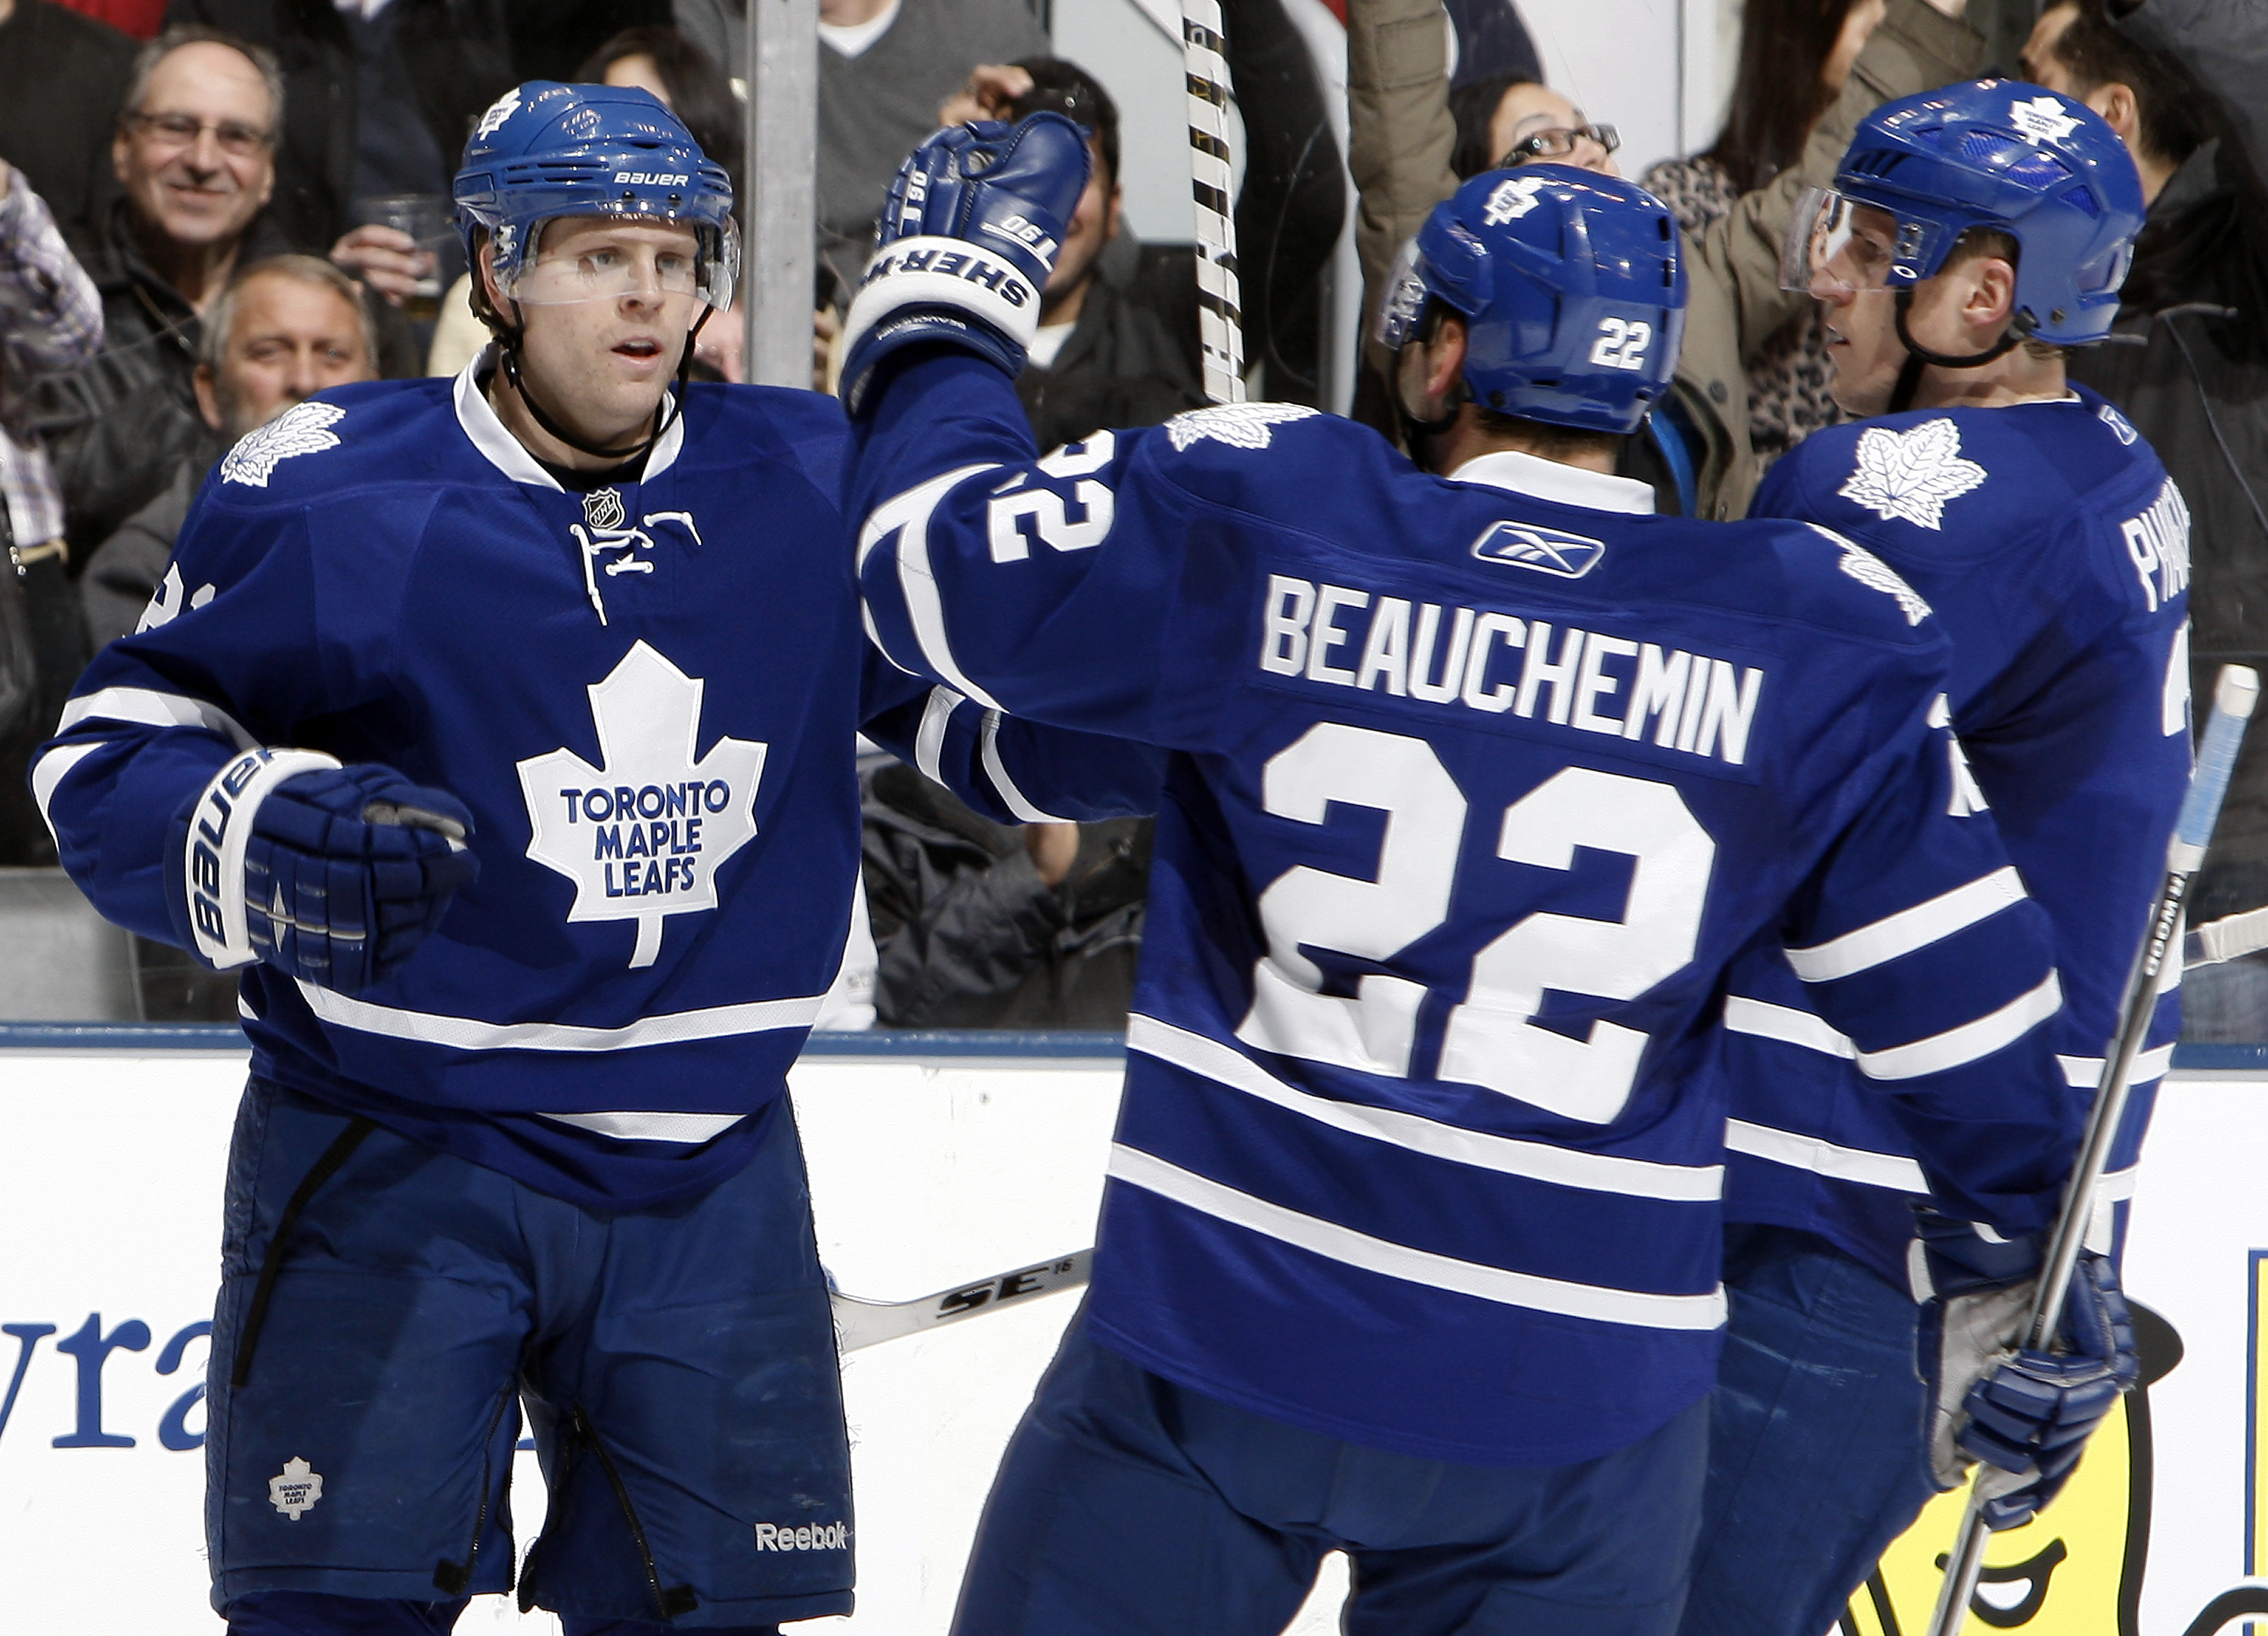 TORONTO, CANADA - JANUARY 6: Phil Kessel #81, Francois Beauchemin #22  and Dion Phaneuf #3 of the Toronto Maple Leafs celebrate Phil Kessel goal against the St. Louis Blues during game action at the Air Canada Centre January 6, 2011 in Toronto, Ontario, C